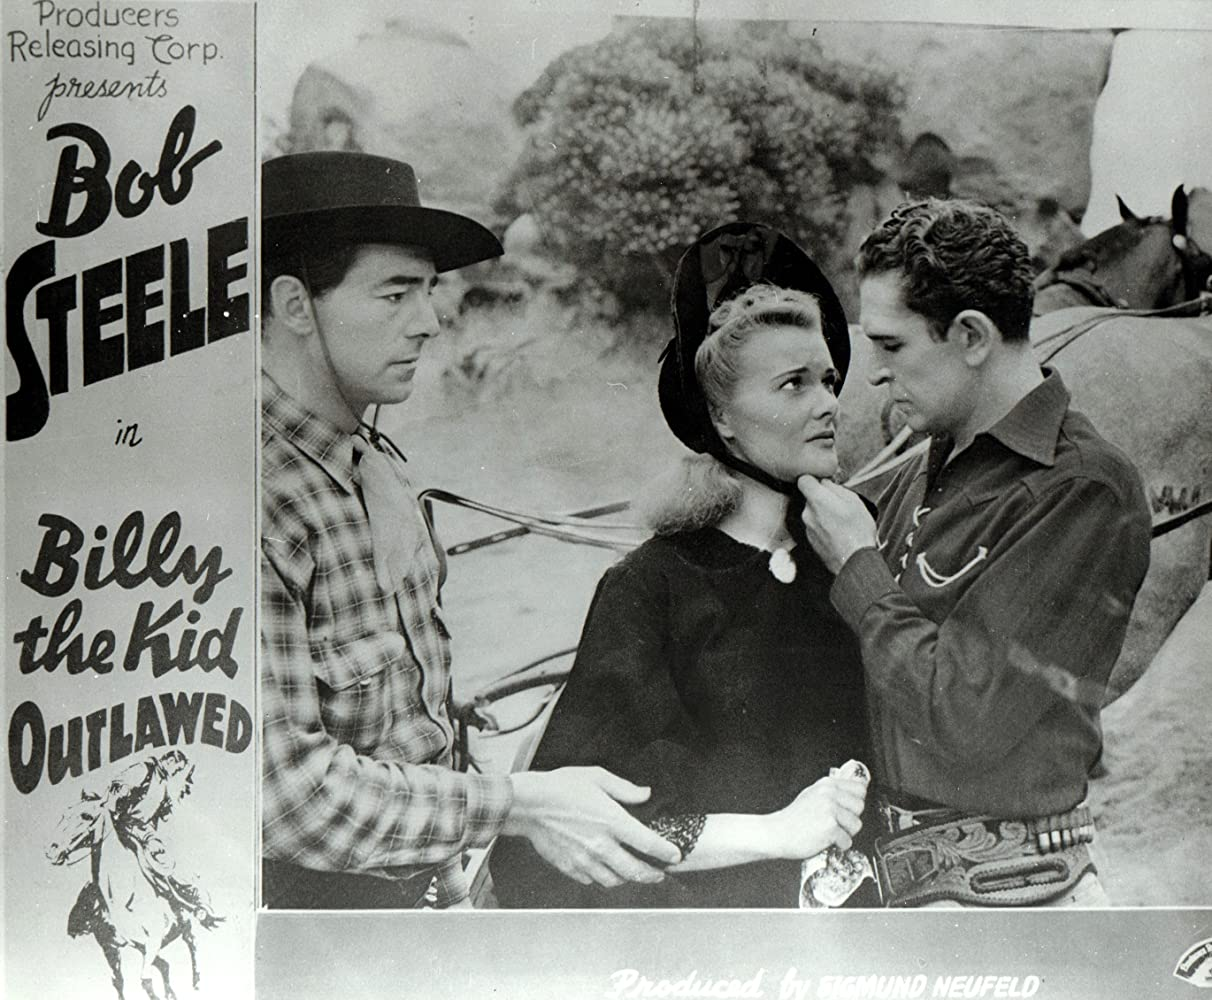 Louise Currie, Kenne Duncan, and Bob Steele in Billy the Kid Outlawed (1940)